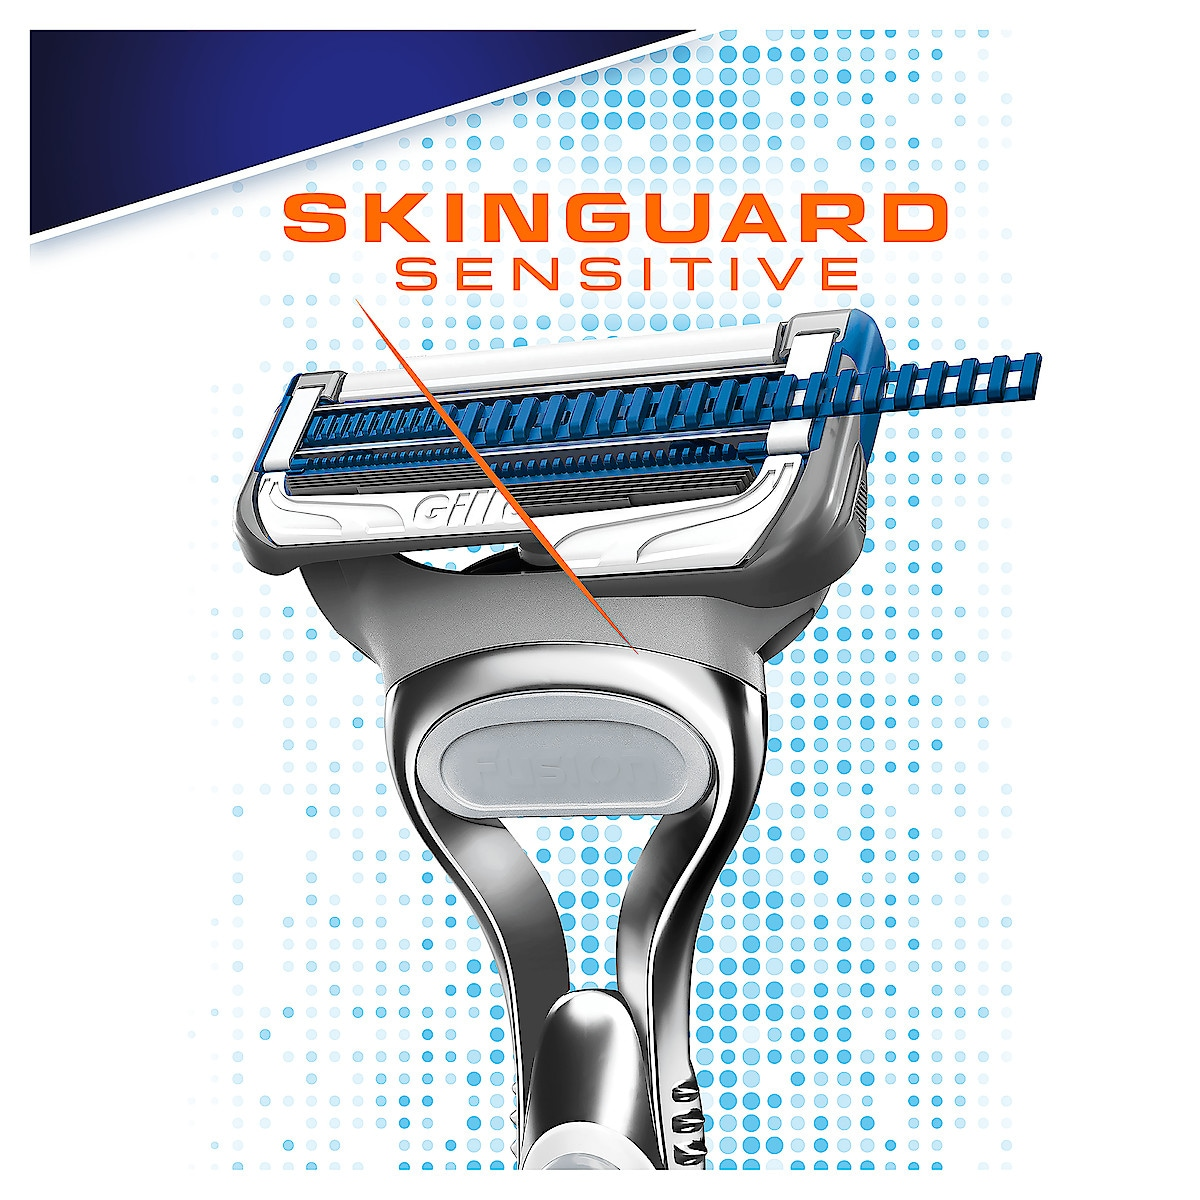 Rakblad Gillette SkinGuard Sensitive 4-pack